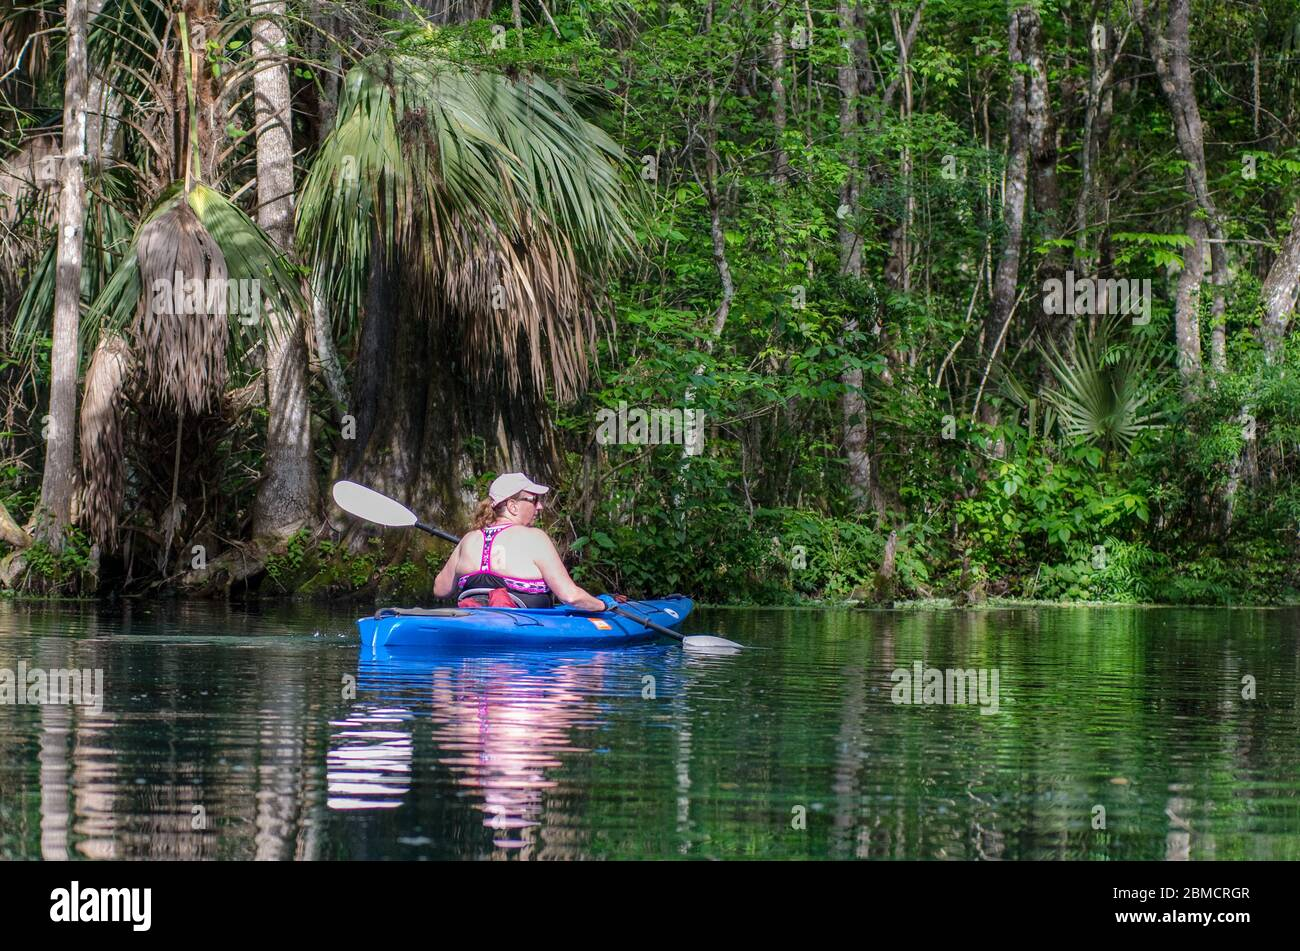 An active senior woman kayaks on the Silver River in Silver Springs State Park, Florida Stock Photo